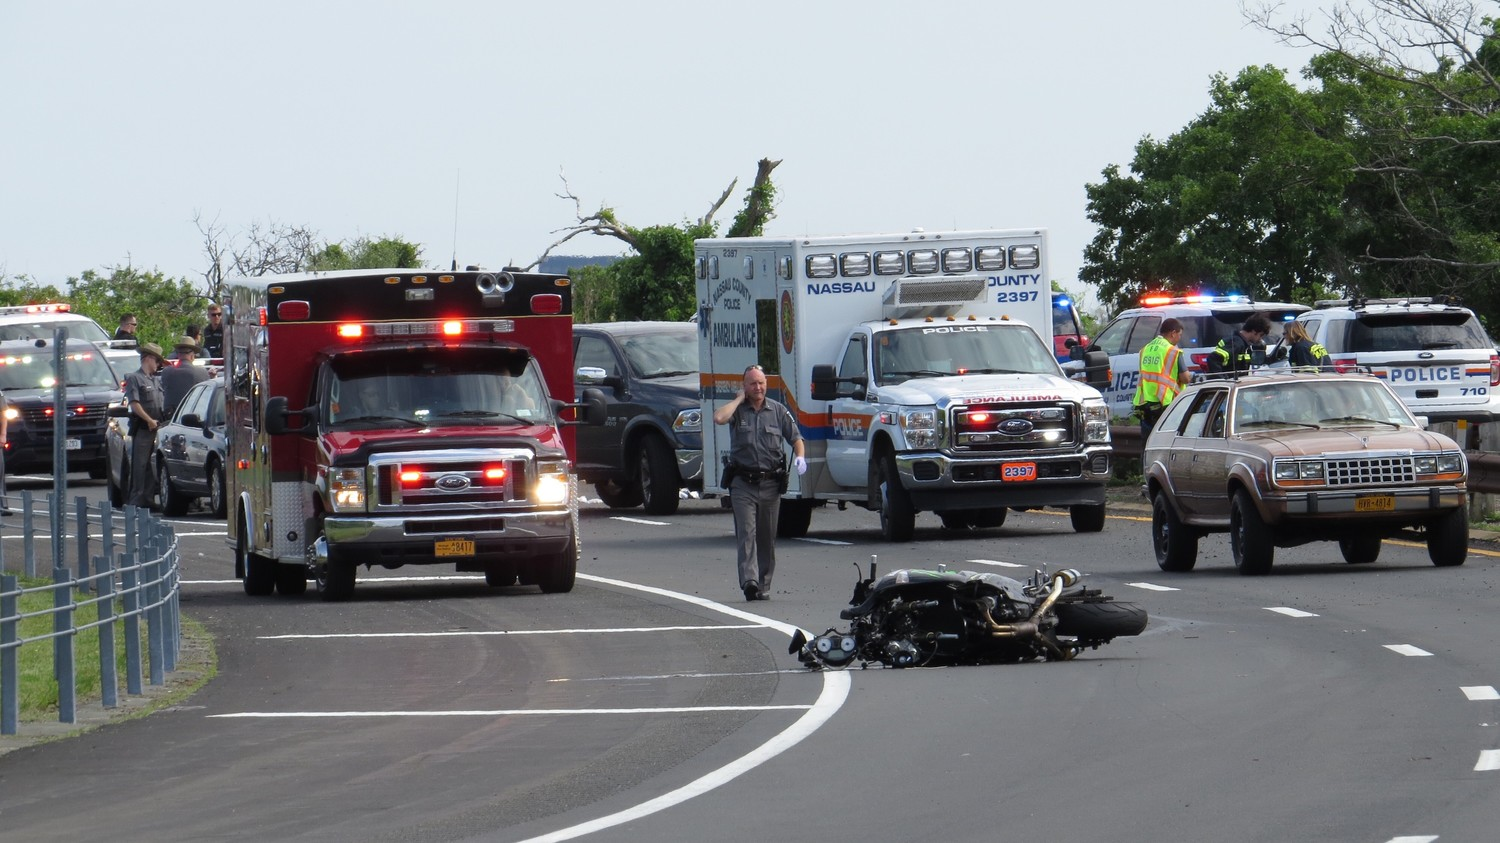 Levittown motorcyclist William Moore, 55, died on June 6 at approximately 4 p.m. when his motorcycle struck a guard rail and ejected him and his female passenger from their seats.